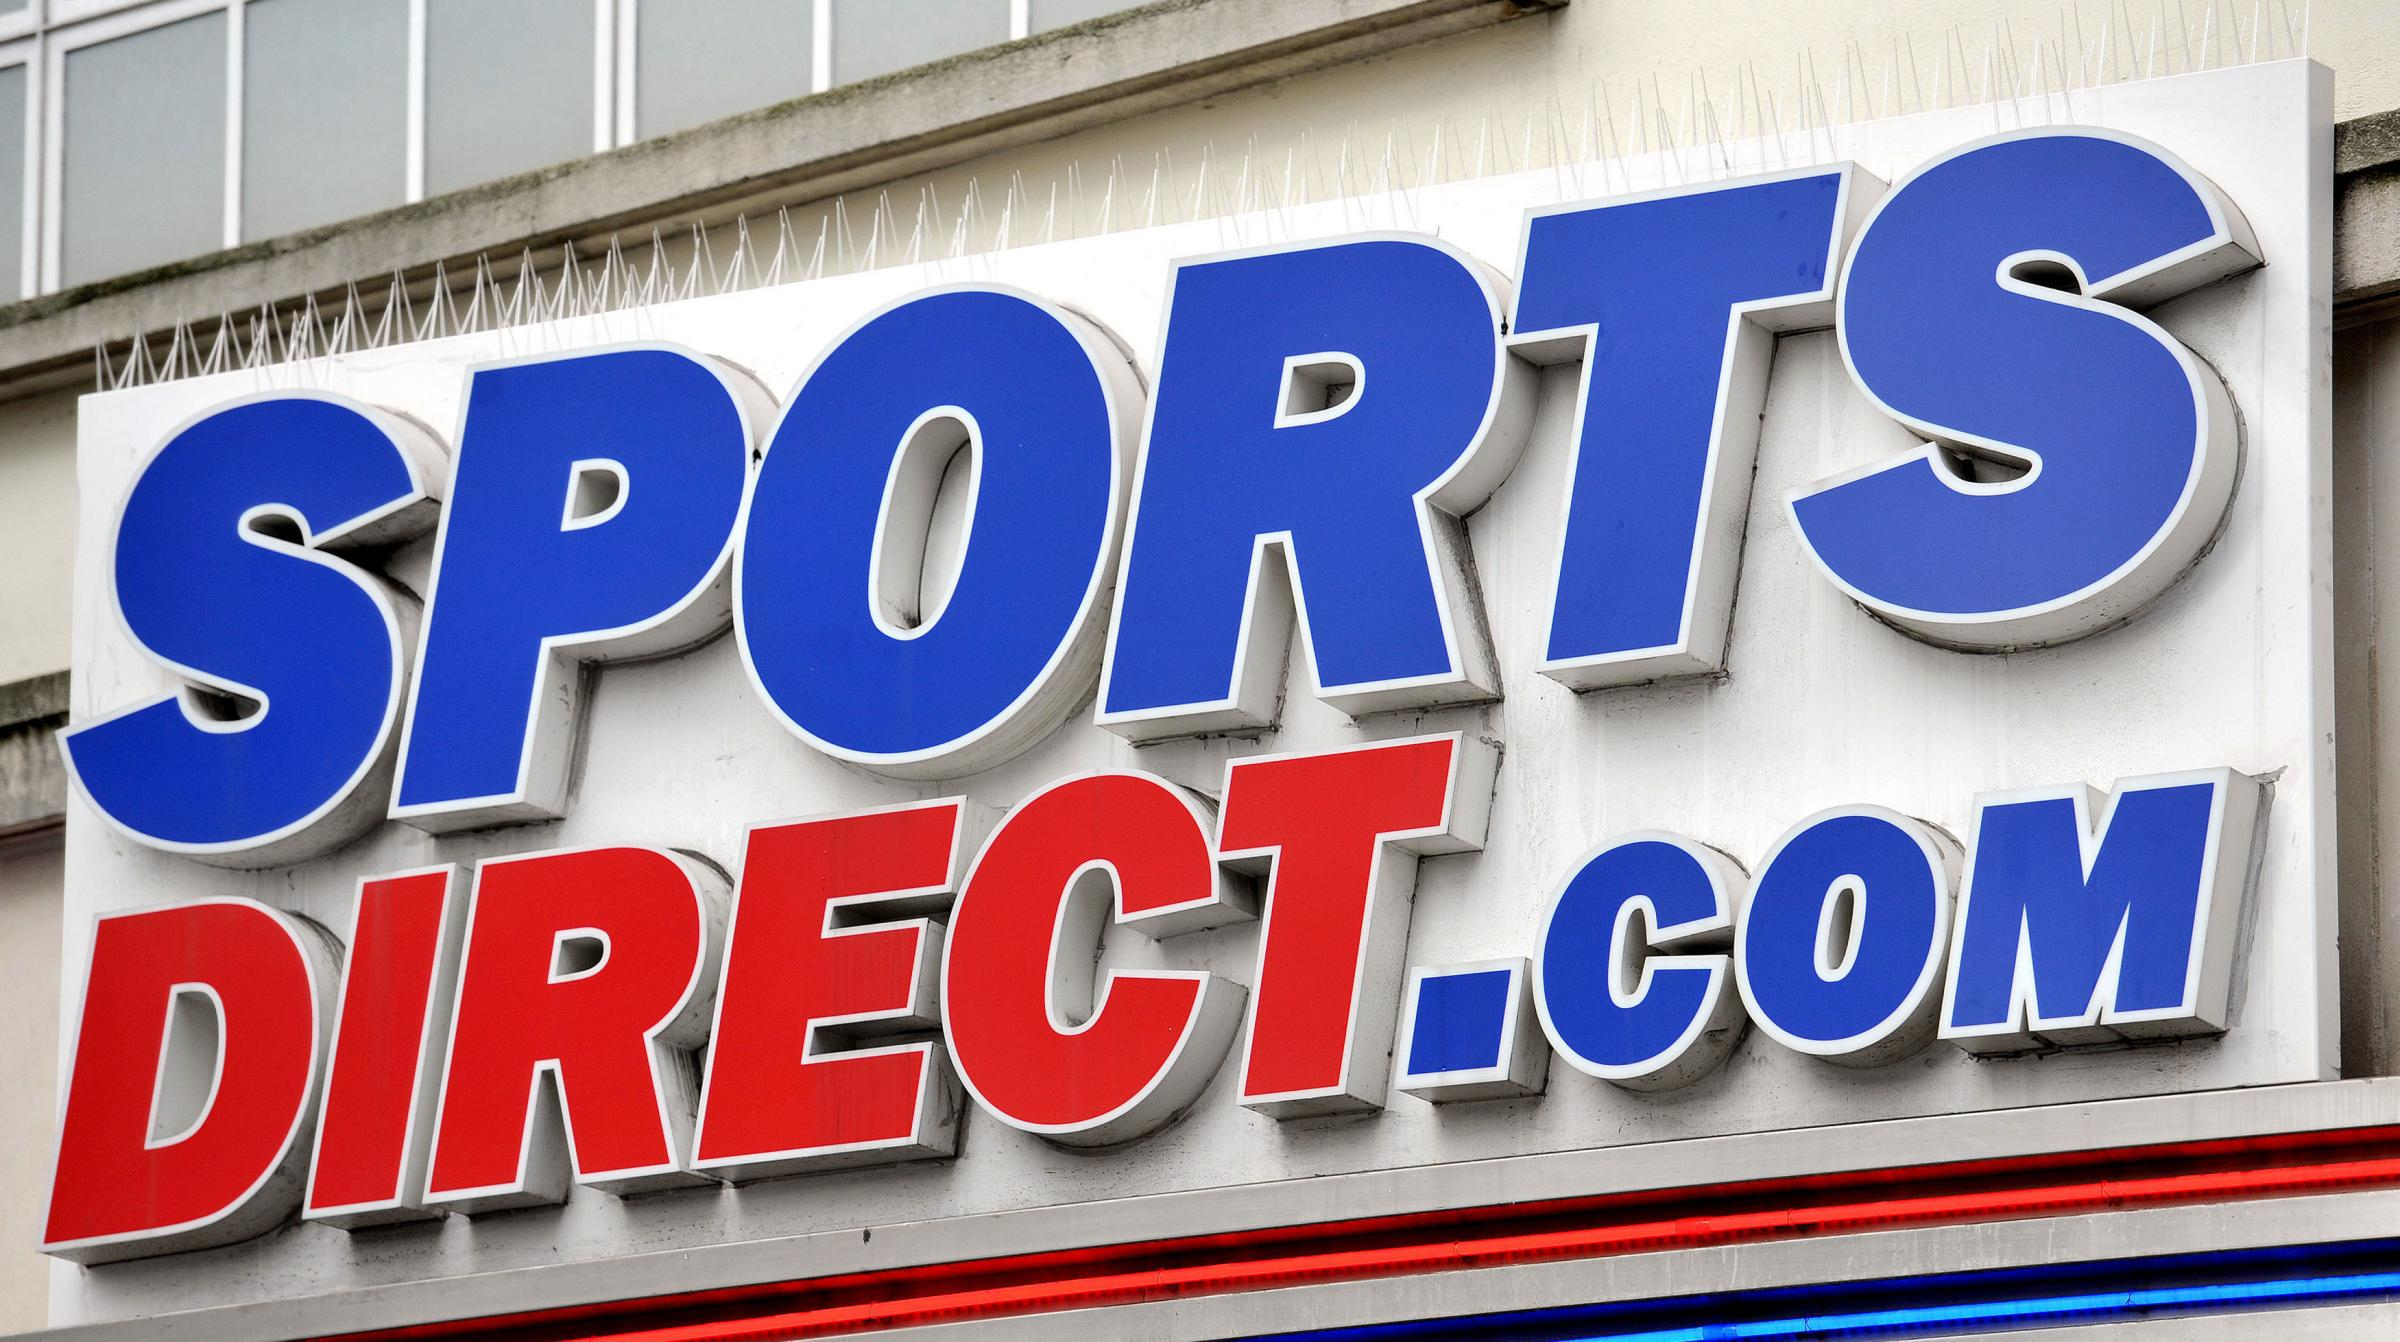 Independent investors voted 70.7 per cent against the proposal designed to bring the pay of John Ashley - a former IT director at Sports Direct - in line with other senior executives